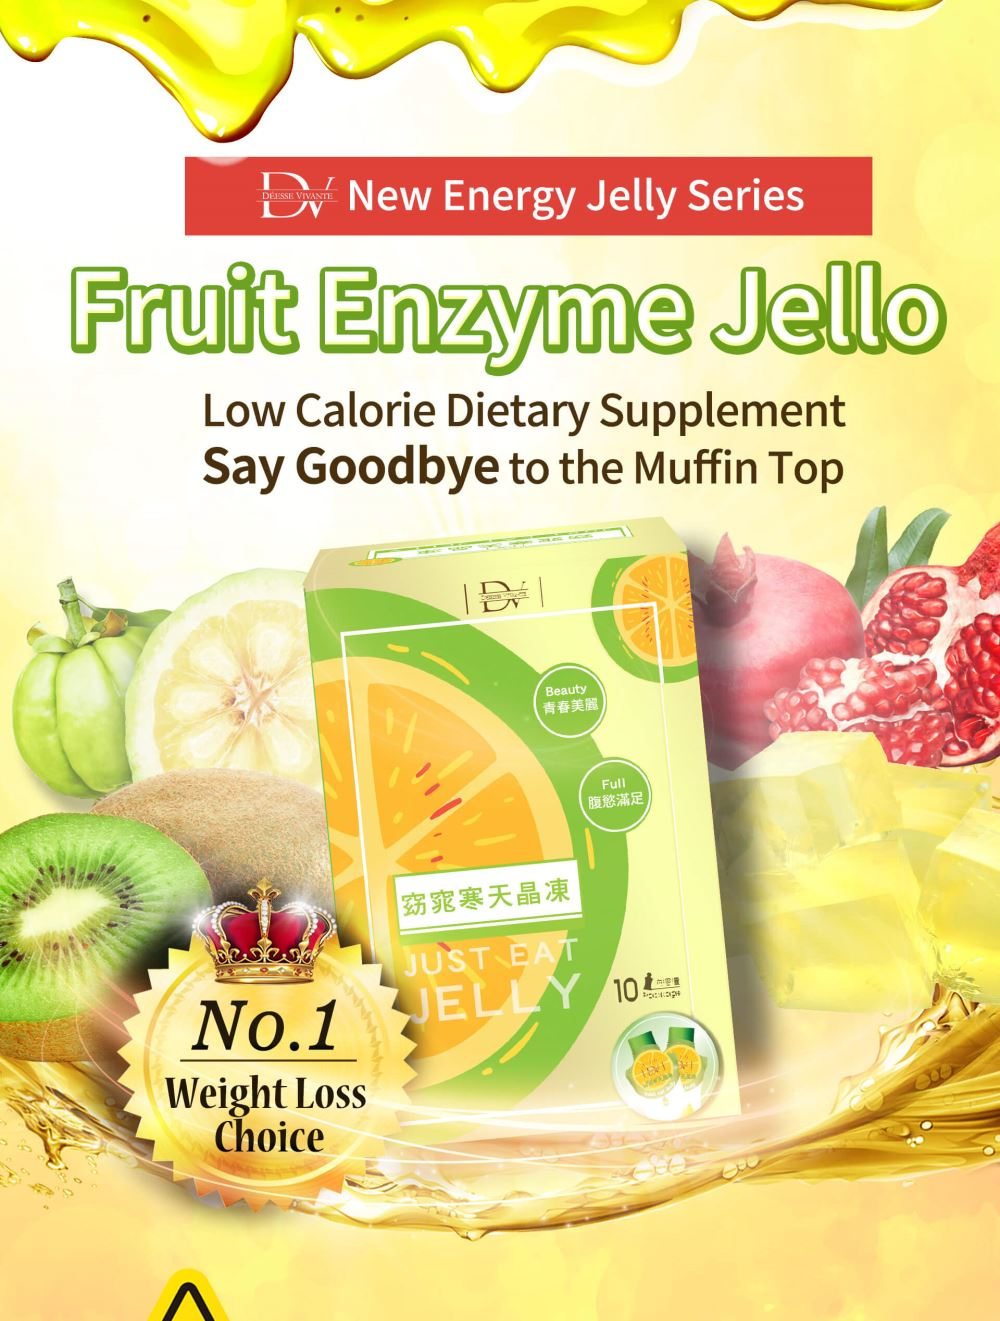 DV Fruit Enzyme Jello